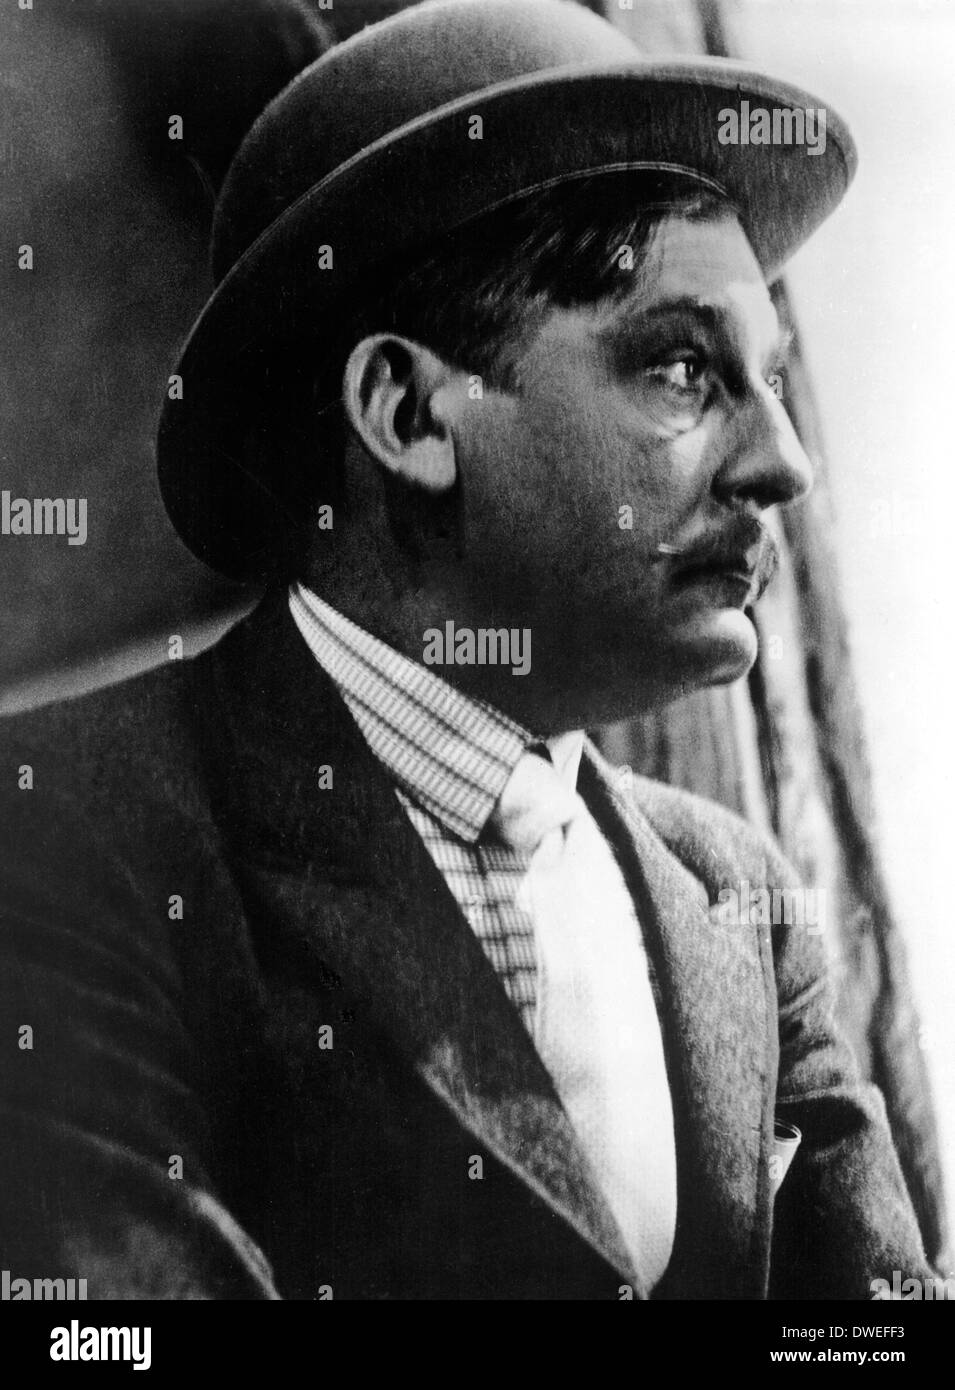 Rudolf Forster, on-set of the Film, 'The Threepenny Opera (Die Dreigroschenoper)' Directed by  G. W. Pabst, 1931 - Stock Image